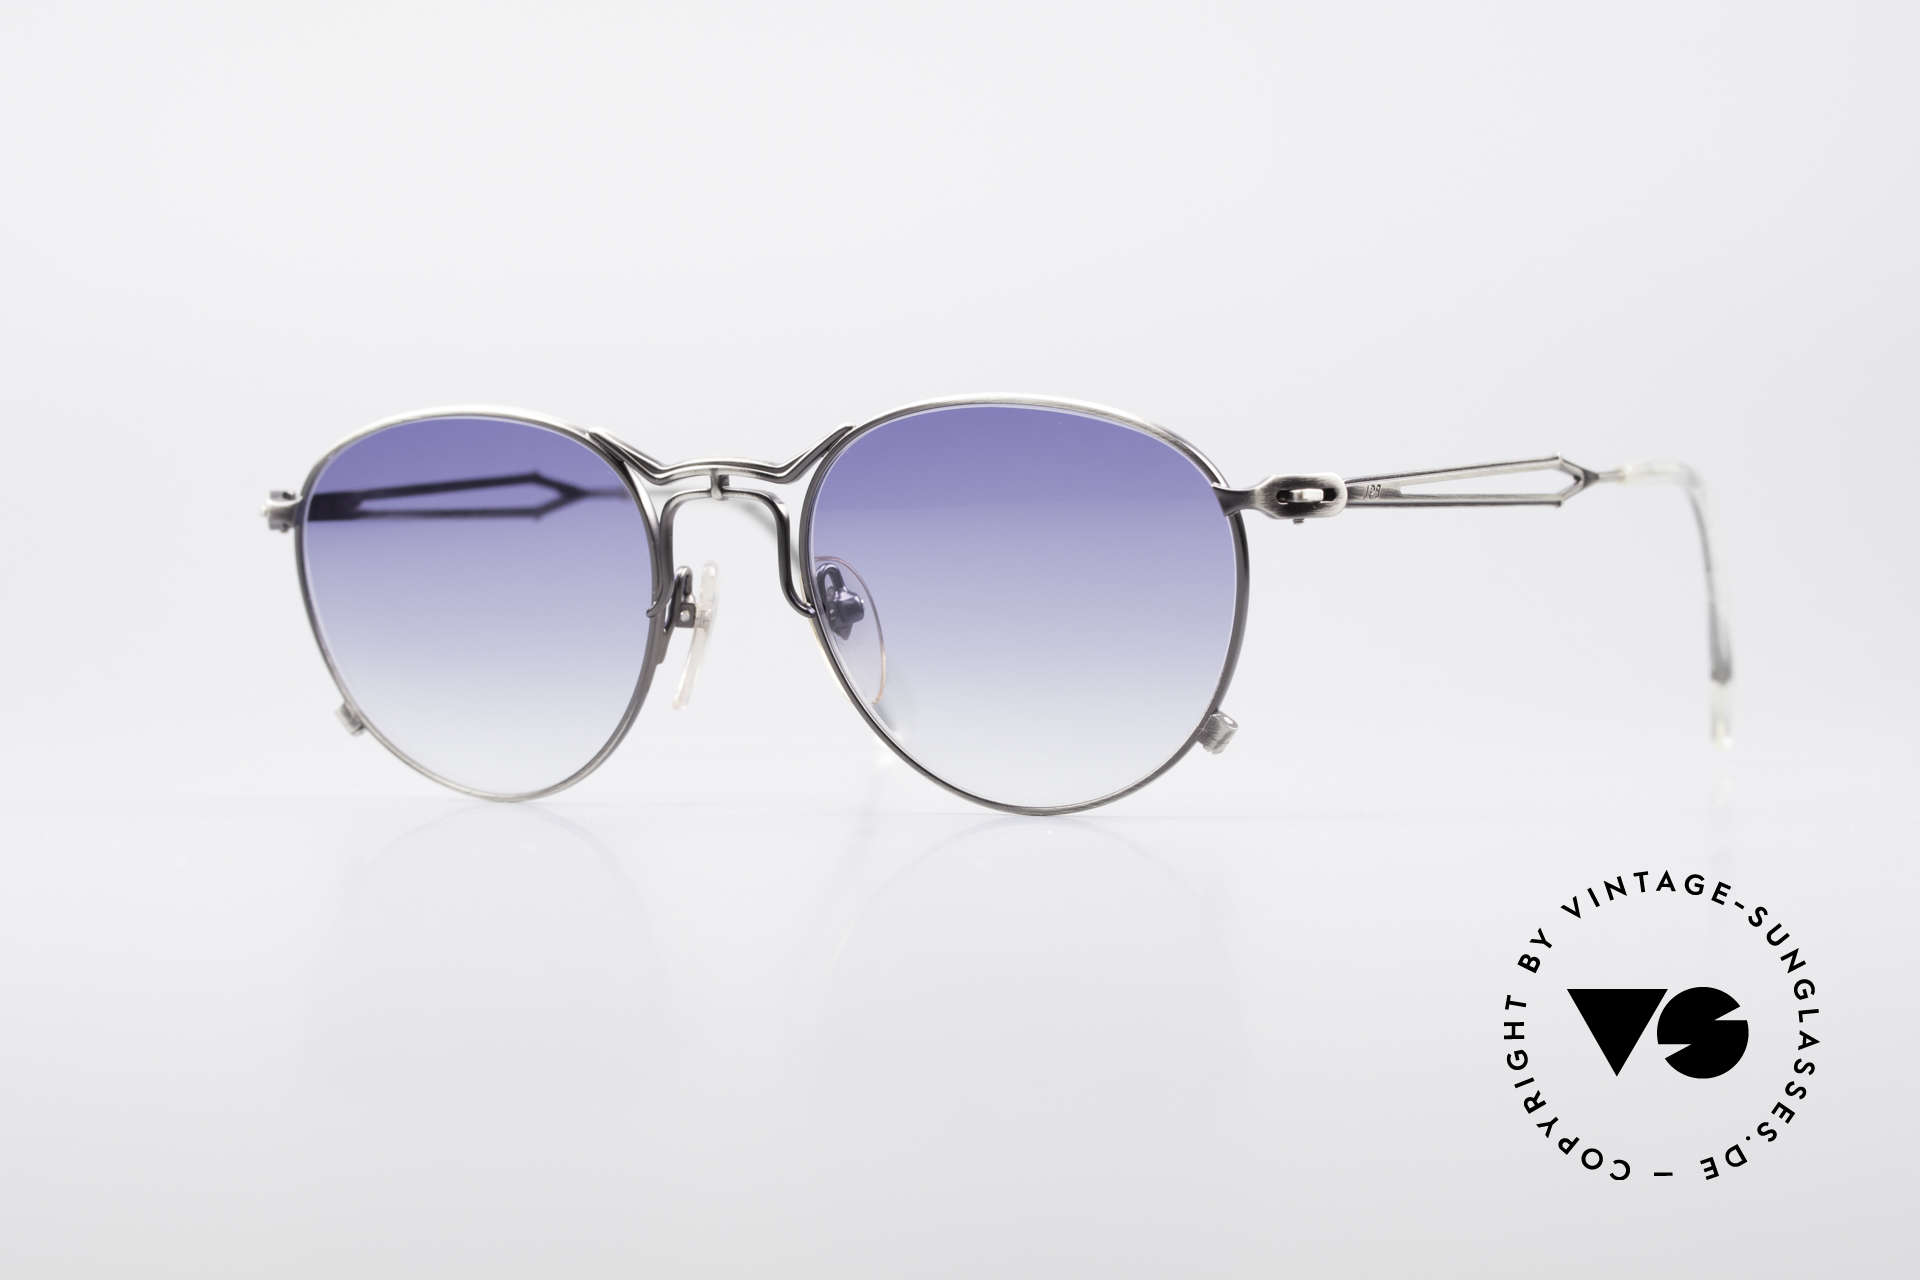 Jean Paul Gaultier 55-2177 Rare Designer Sunglasses, extraordinary vintage JP Gaultier designer sunglasses, Made for Men and Women